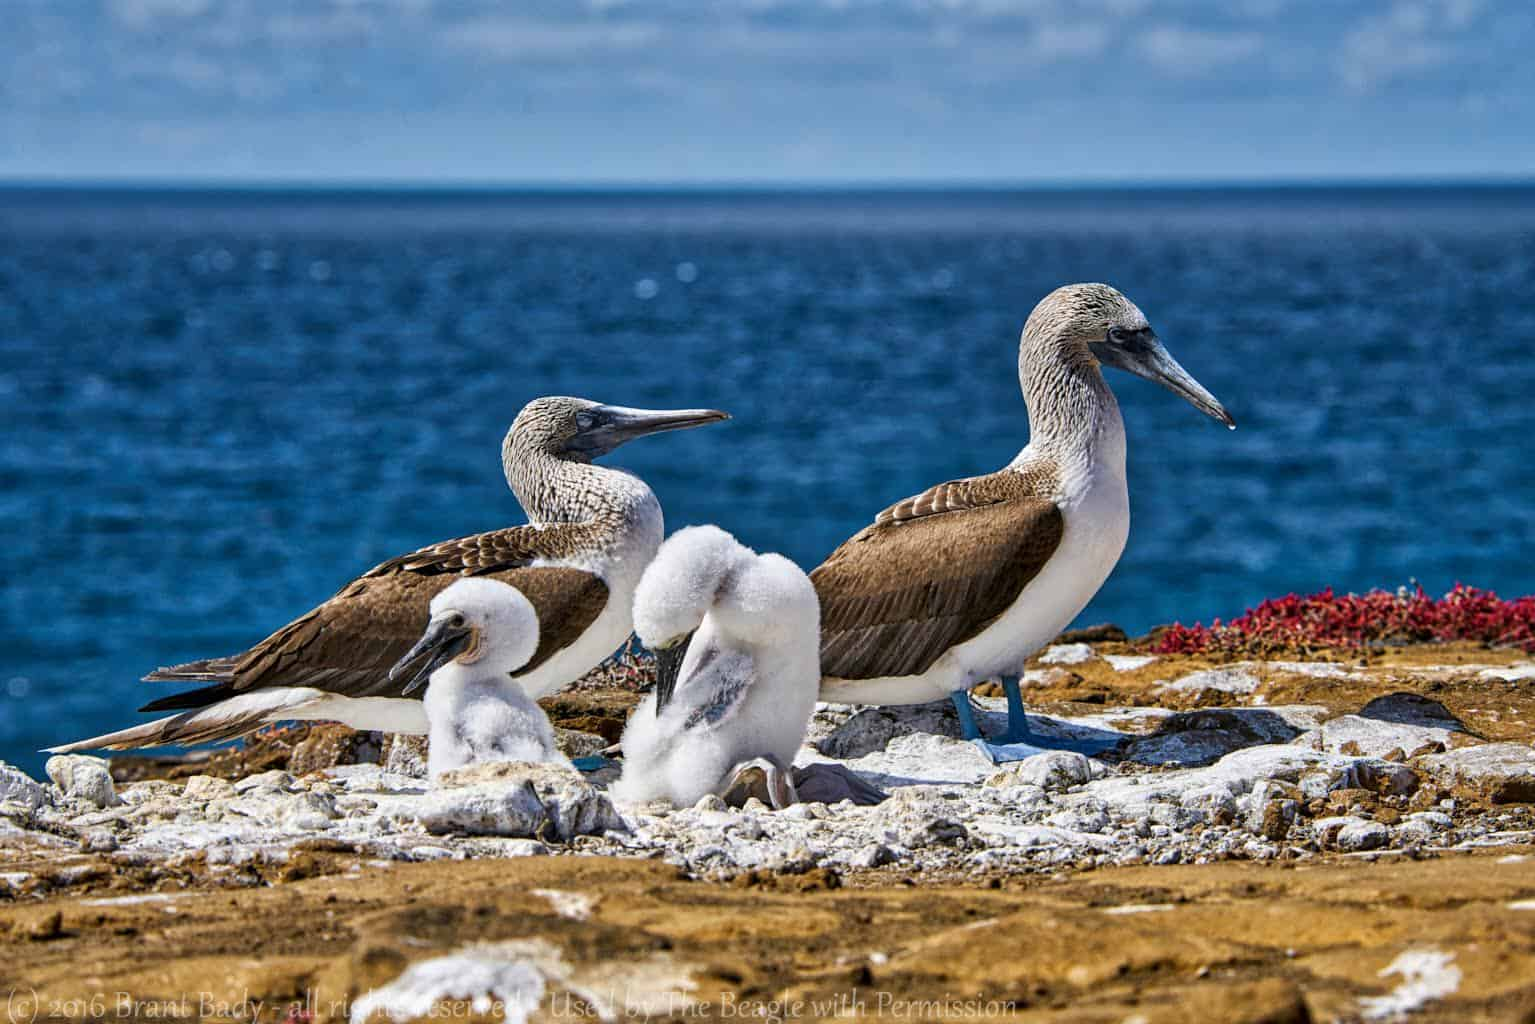 As the Climate Changes, So Will the Galápagos